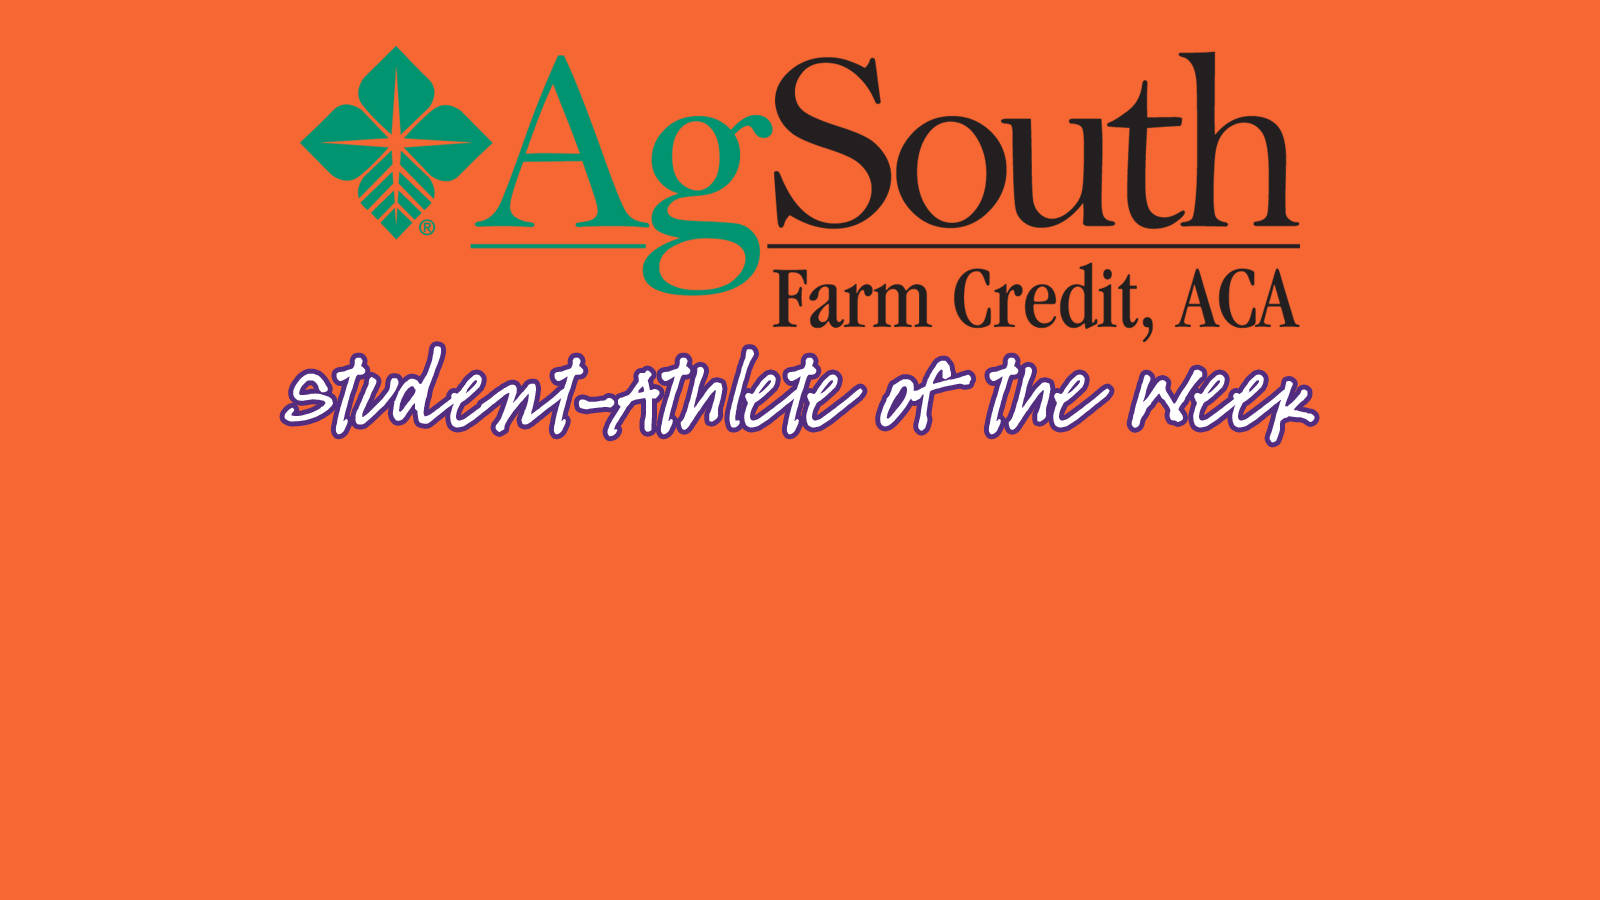 AgSouth Homegrown Athlete of the Week – Keni Harrison